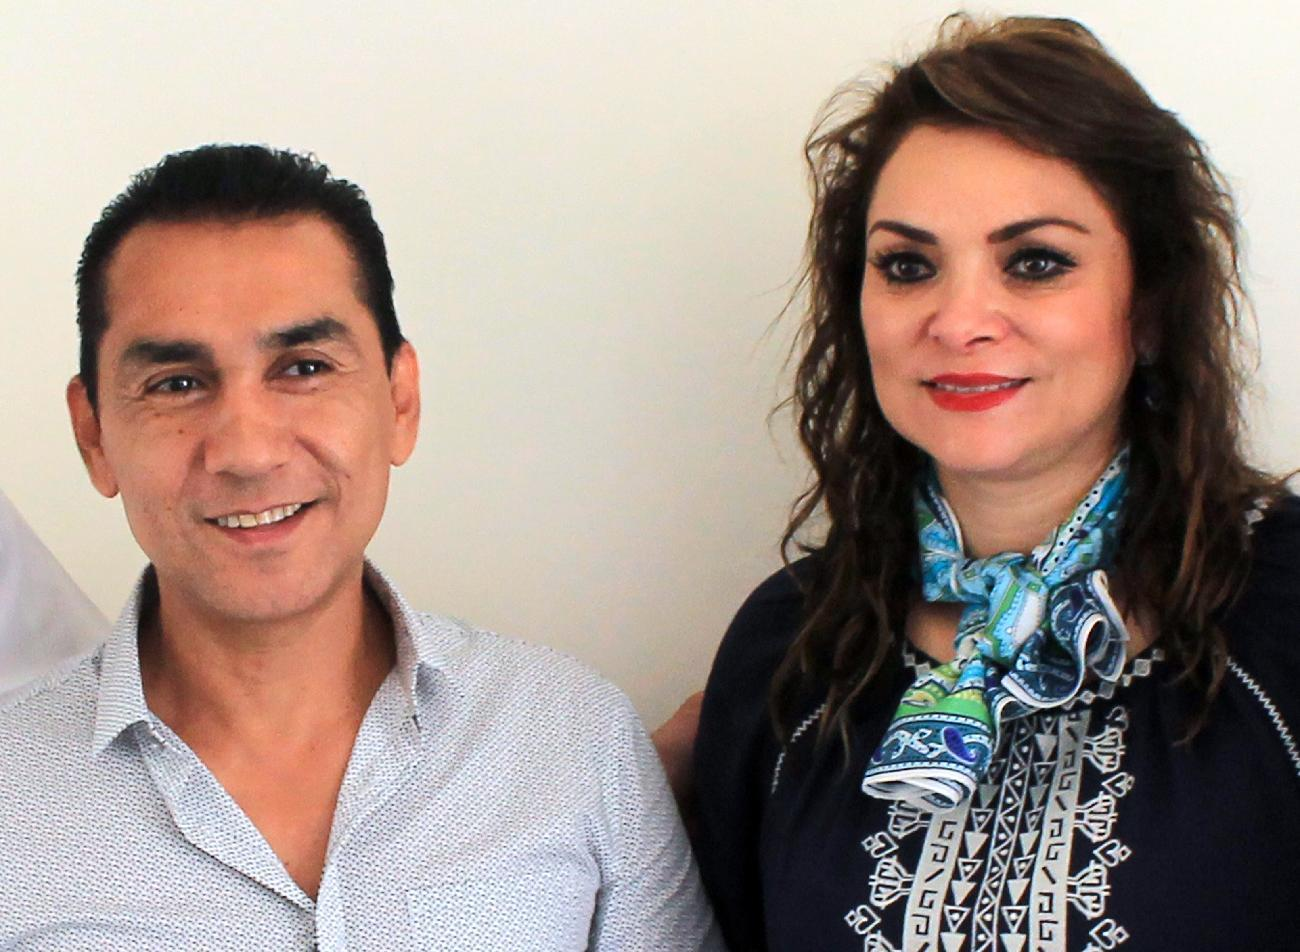 Former Iguala mayor Jose Luis Abarca and his wife Maria de Los Angeles Pineda, shown July 3, 2014, are accused of colluding with a drug cartel in the disappearance of 43 students (AFP Photo/Jesus Guerrero)